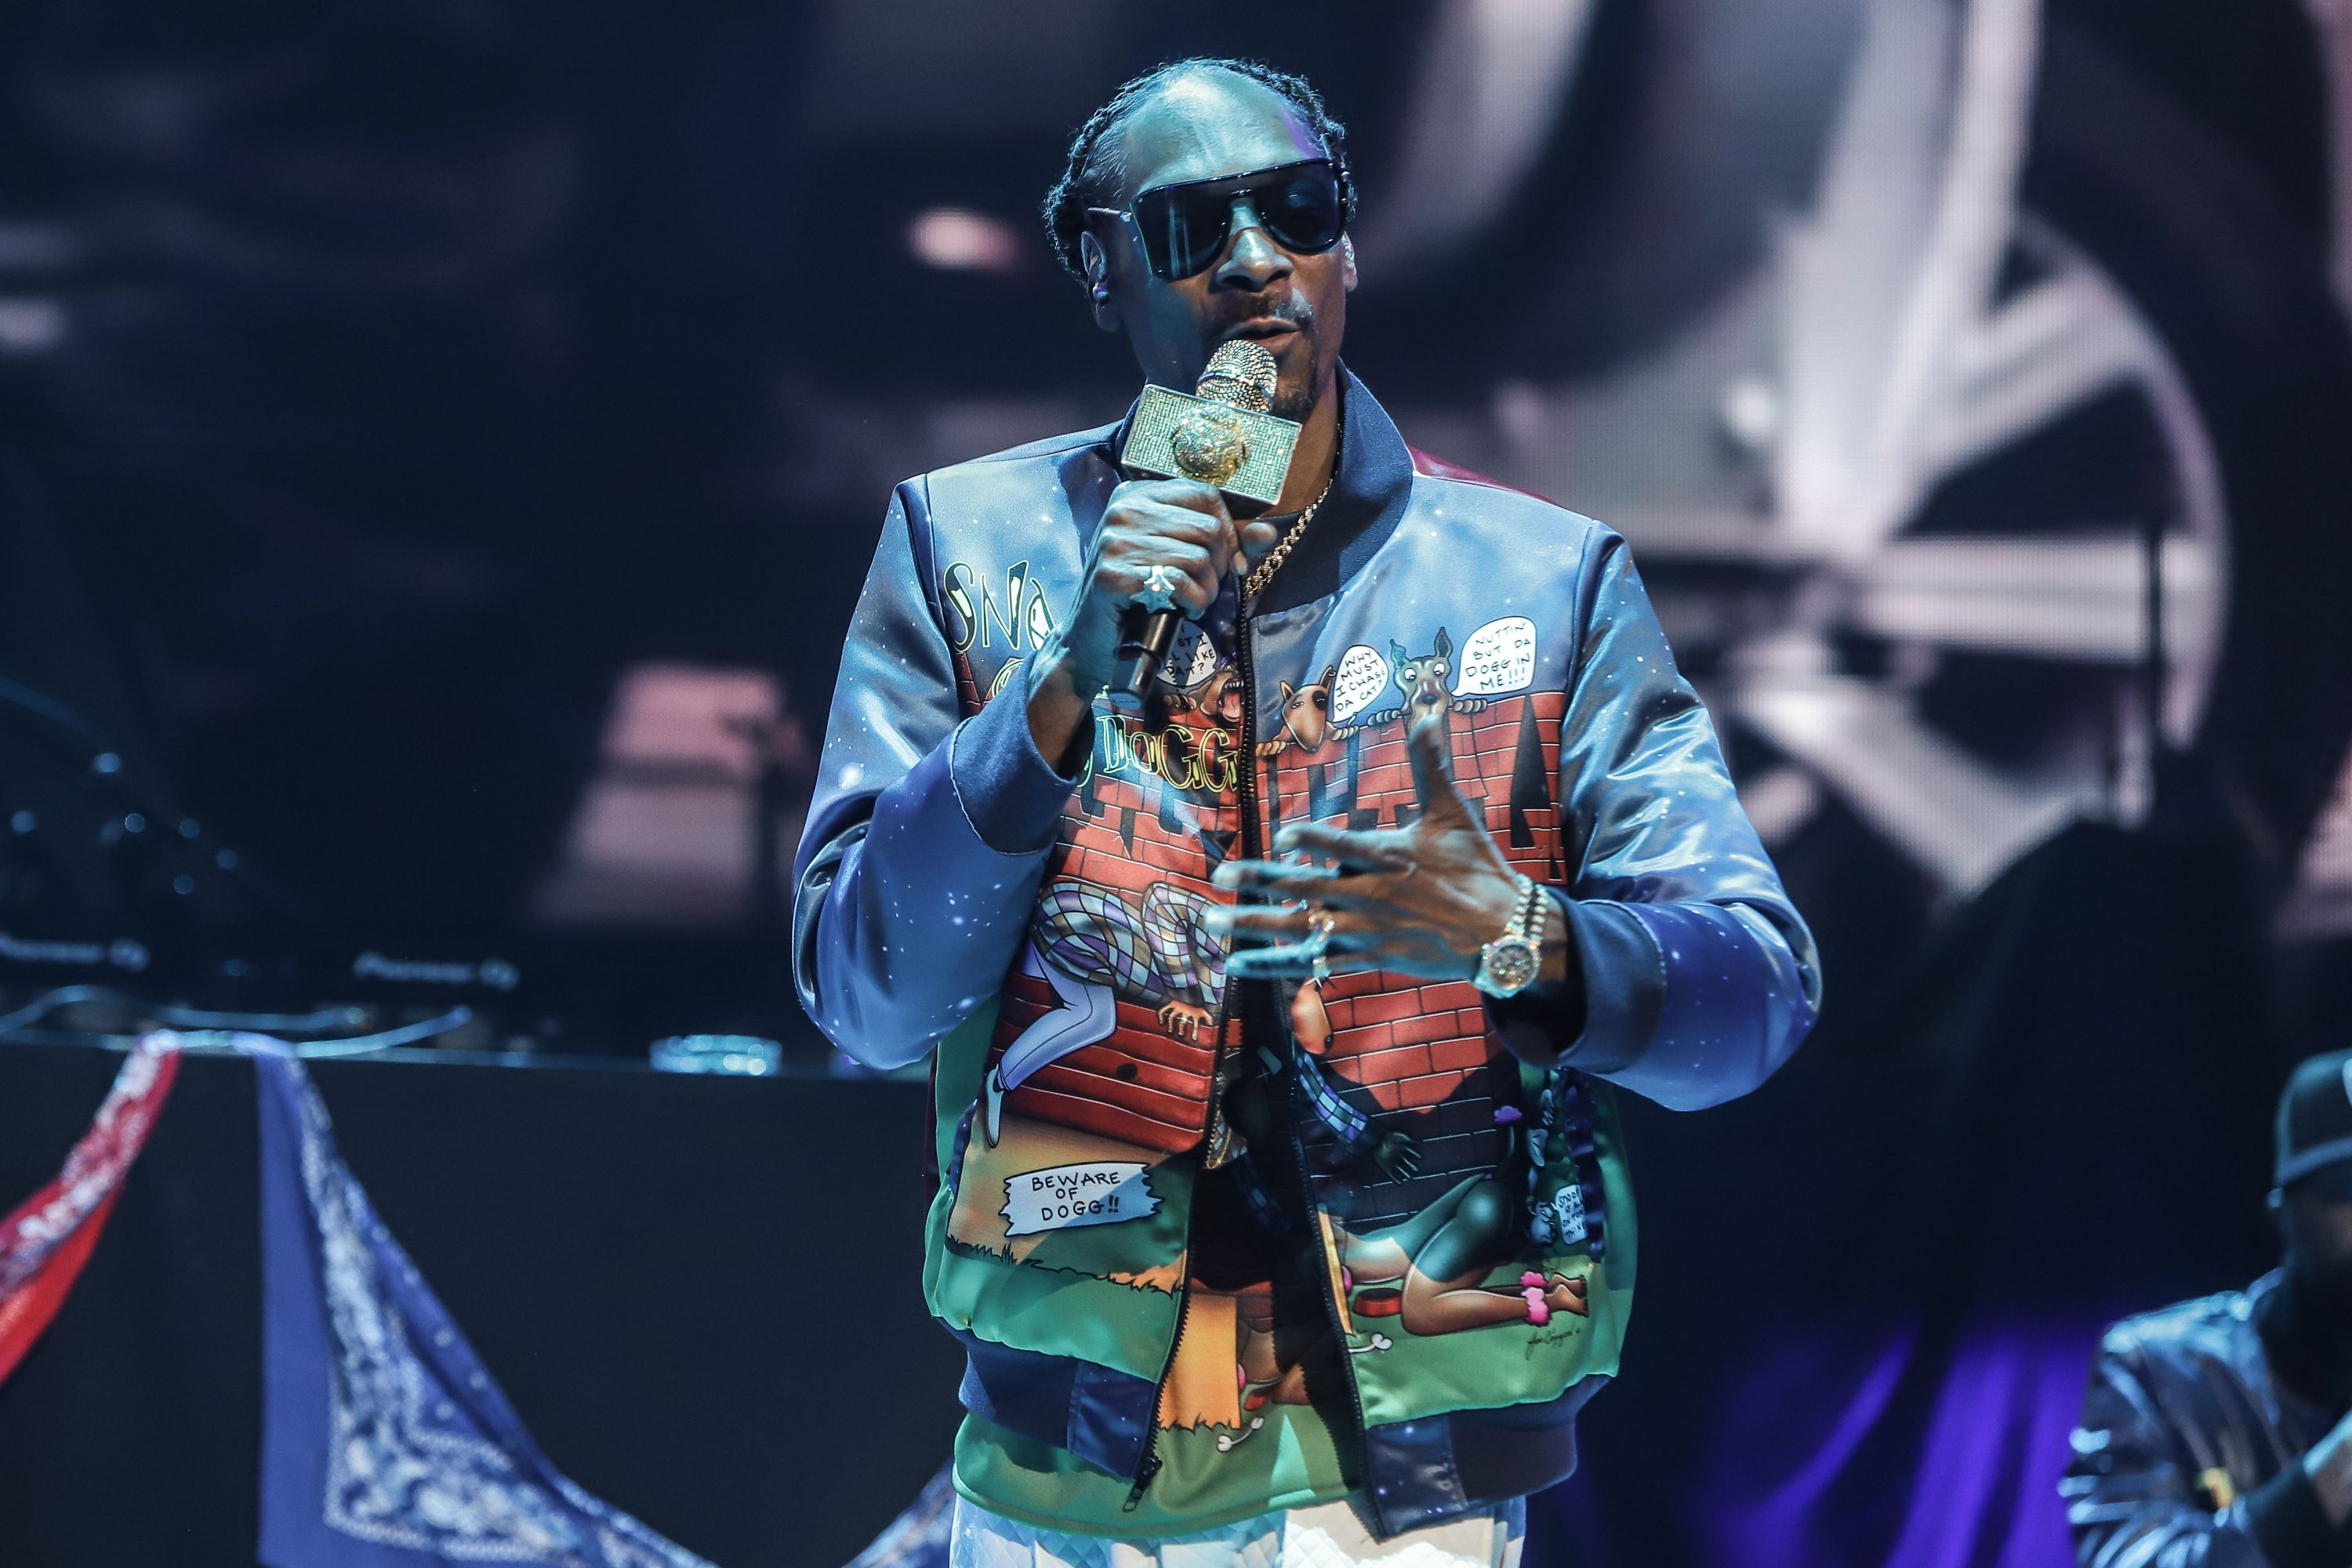 Snoop Dogg performs at the Bud Light Super Bowl Music Fest on January 31, 2020.   Photo: Getty Images